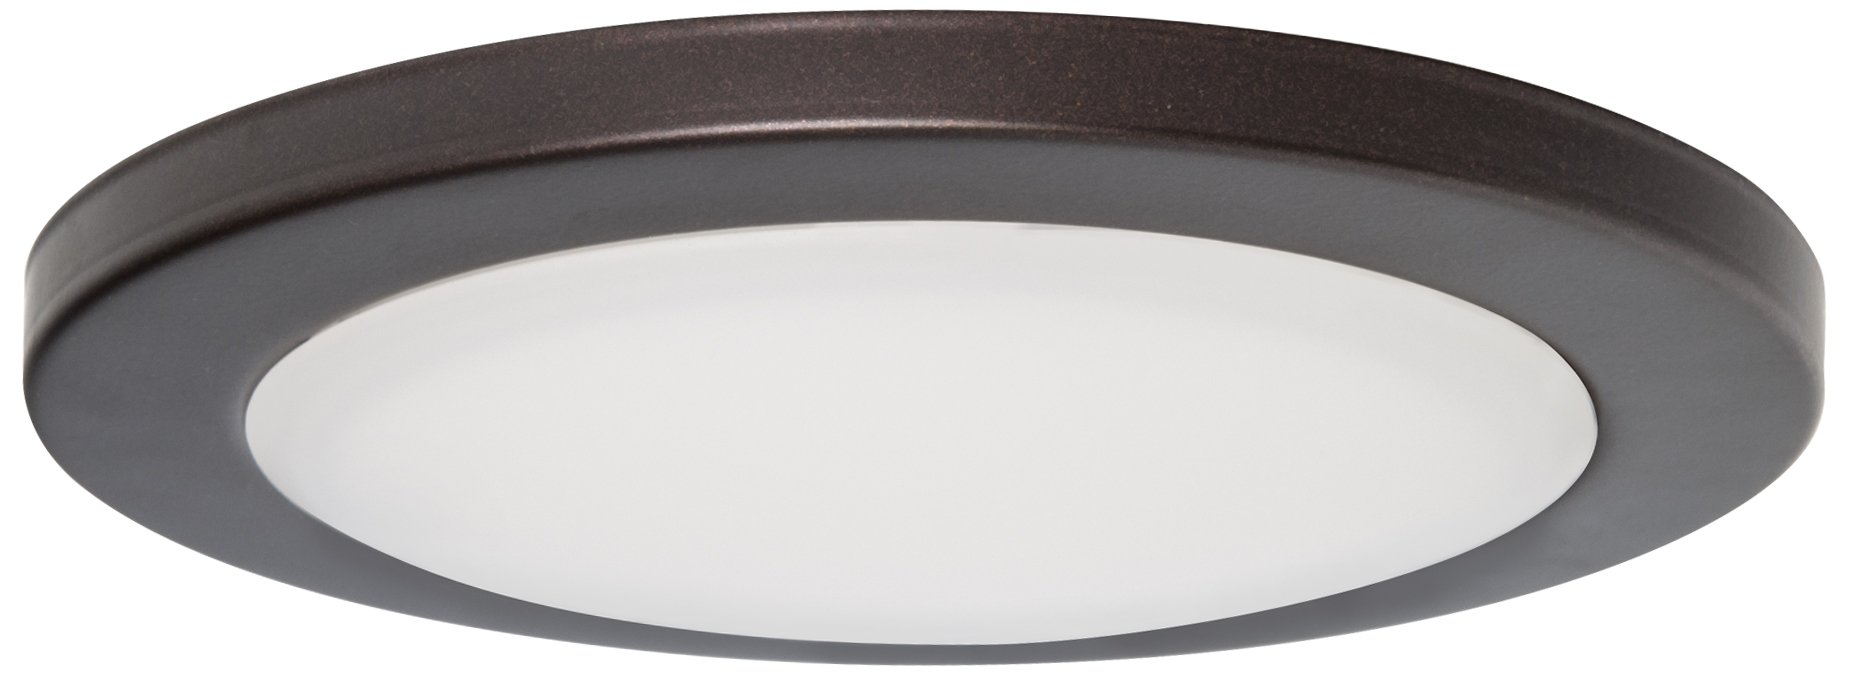 Amax Lighting - Led Slim Disk - Bronze - Total Bulb Wattage: 15 by Amax Lighting